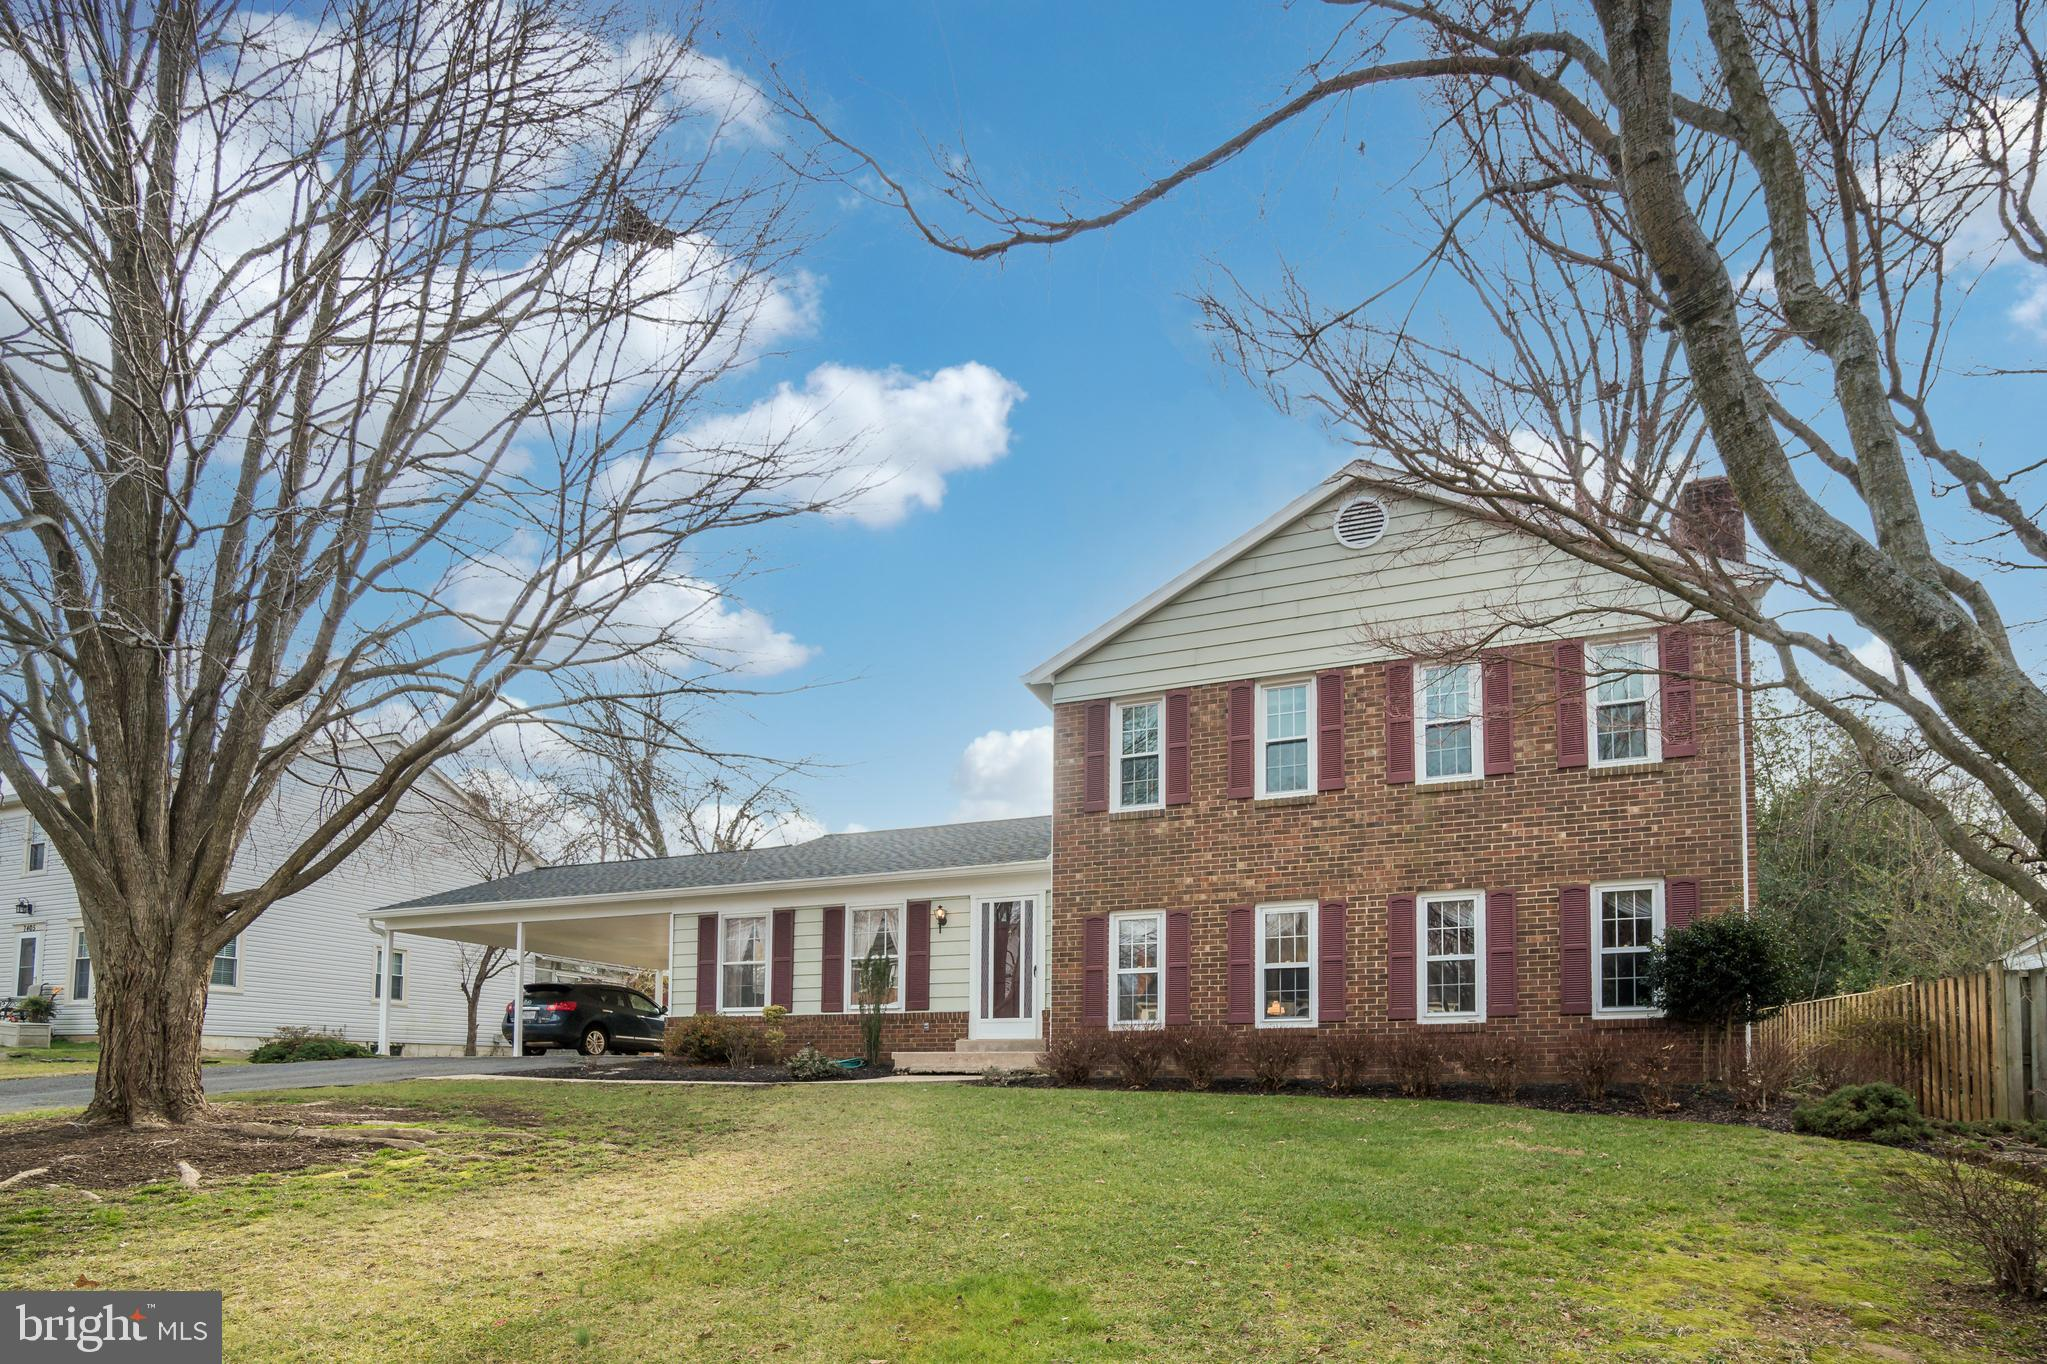 """Solid BRICK home on a GORGEOUS lot that backs to some trees, with the street ending in a Cul-de-Sac.  The home boosts  sun-filled 4 LVLS, 4 BedRms, 2.5 Bath's.  Professional interior/exterior pics will be uploaded this weekend. Crown and Chair Moldings, Arched Entryways, Eat-In Kitchen w/Pantry, Formal Dining Rm w/Sliding Glass Door to Screened Porch, Formal Living Rm. Spacious Rec Rm w/Exposed Beams, Wood Flooring, & Wood burning FP.  Extensive Primary BedRm has a Walk-In Closet w/another large closet near Sitting Area.  RECENTLY REPLACED: ROOF, AC, HEATING, WINDOWS (upper level), ATTIC INSULATION.  5 VEHICLE PARKING- Parking for 2 cars under Carport w/another 3 car parking on paved Driveway.  Backyard Fenced w/Shed.  Home does need some updating. Property has great bones and is being sold strictly """"AS-IS"""".  Quick settlement possible!"""